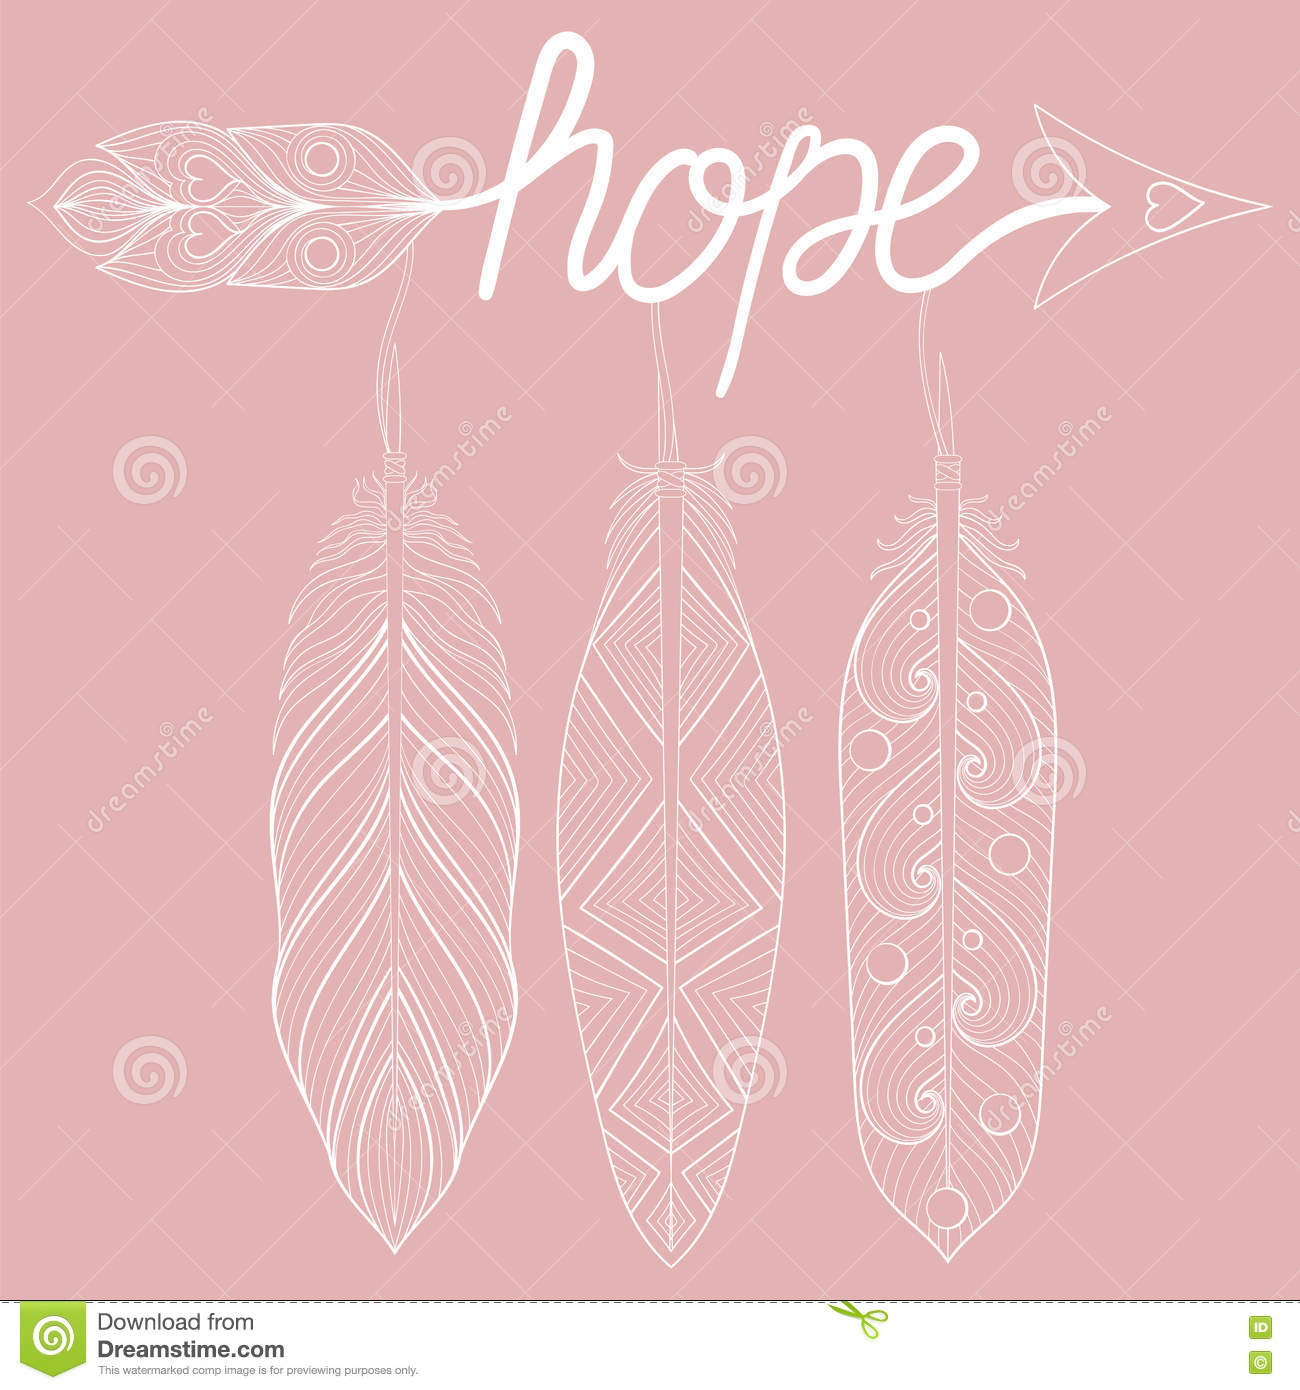 Bohemian Arrow On Pink Background Stock Vector - Illustration of ...